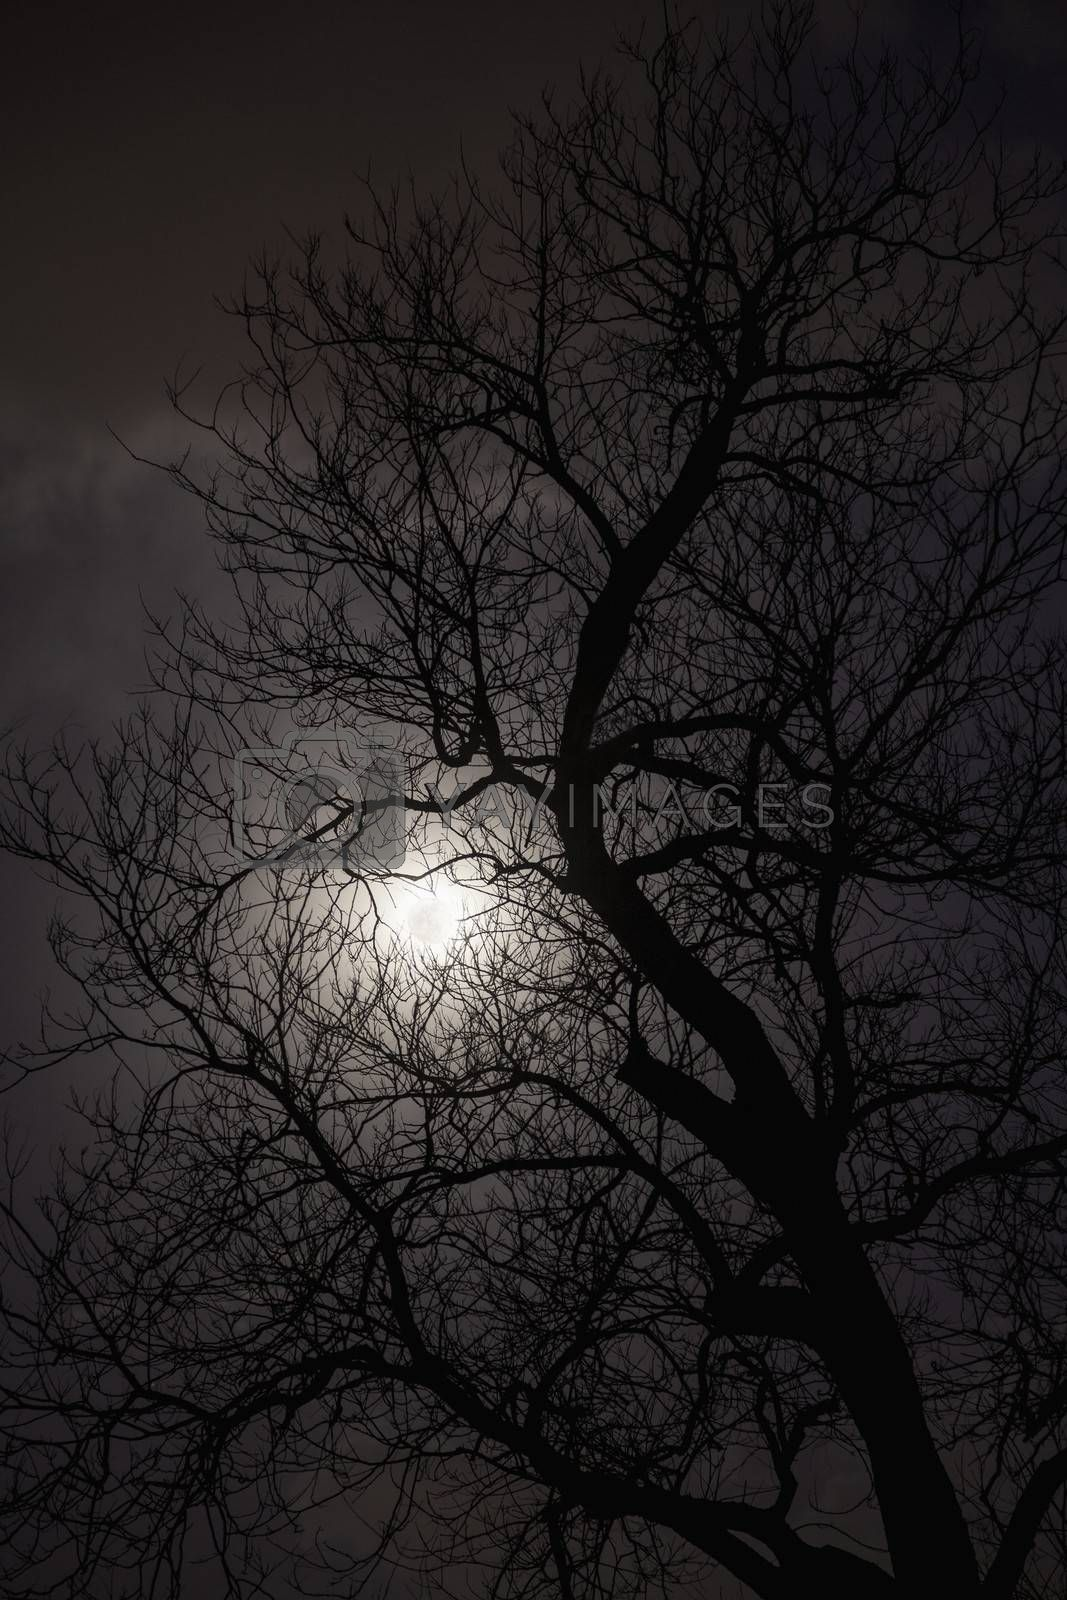 Silhouette of trees in the moonlight.